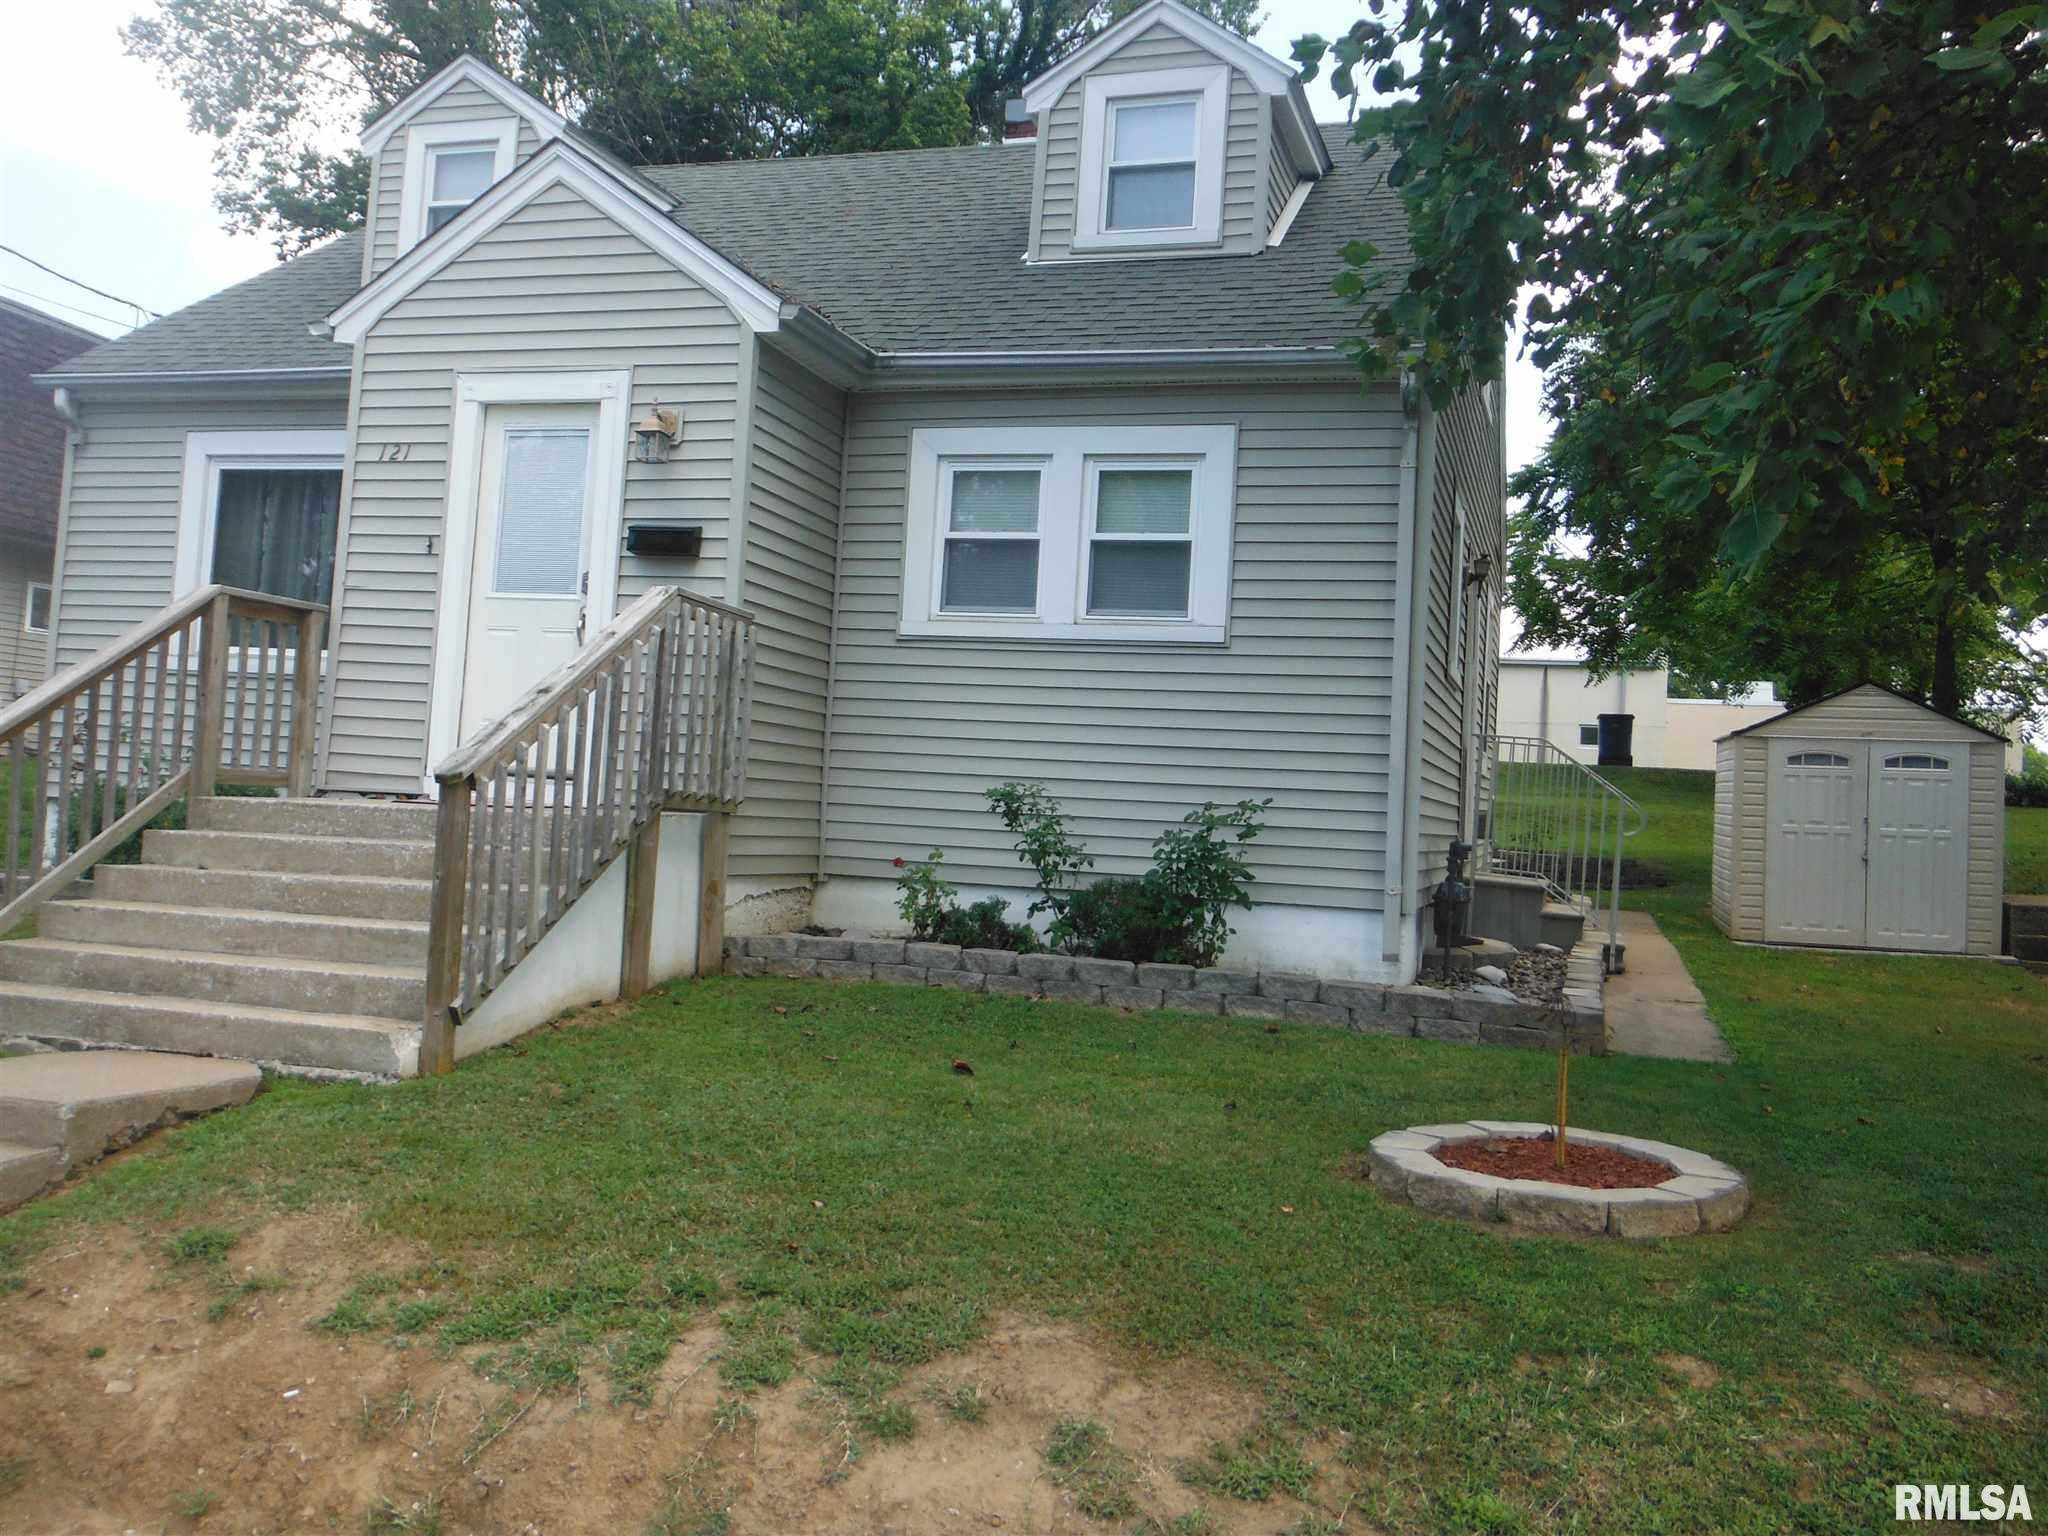 $72,000 - 4Br/2Ba -  for Sale in Other, Anna